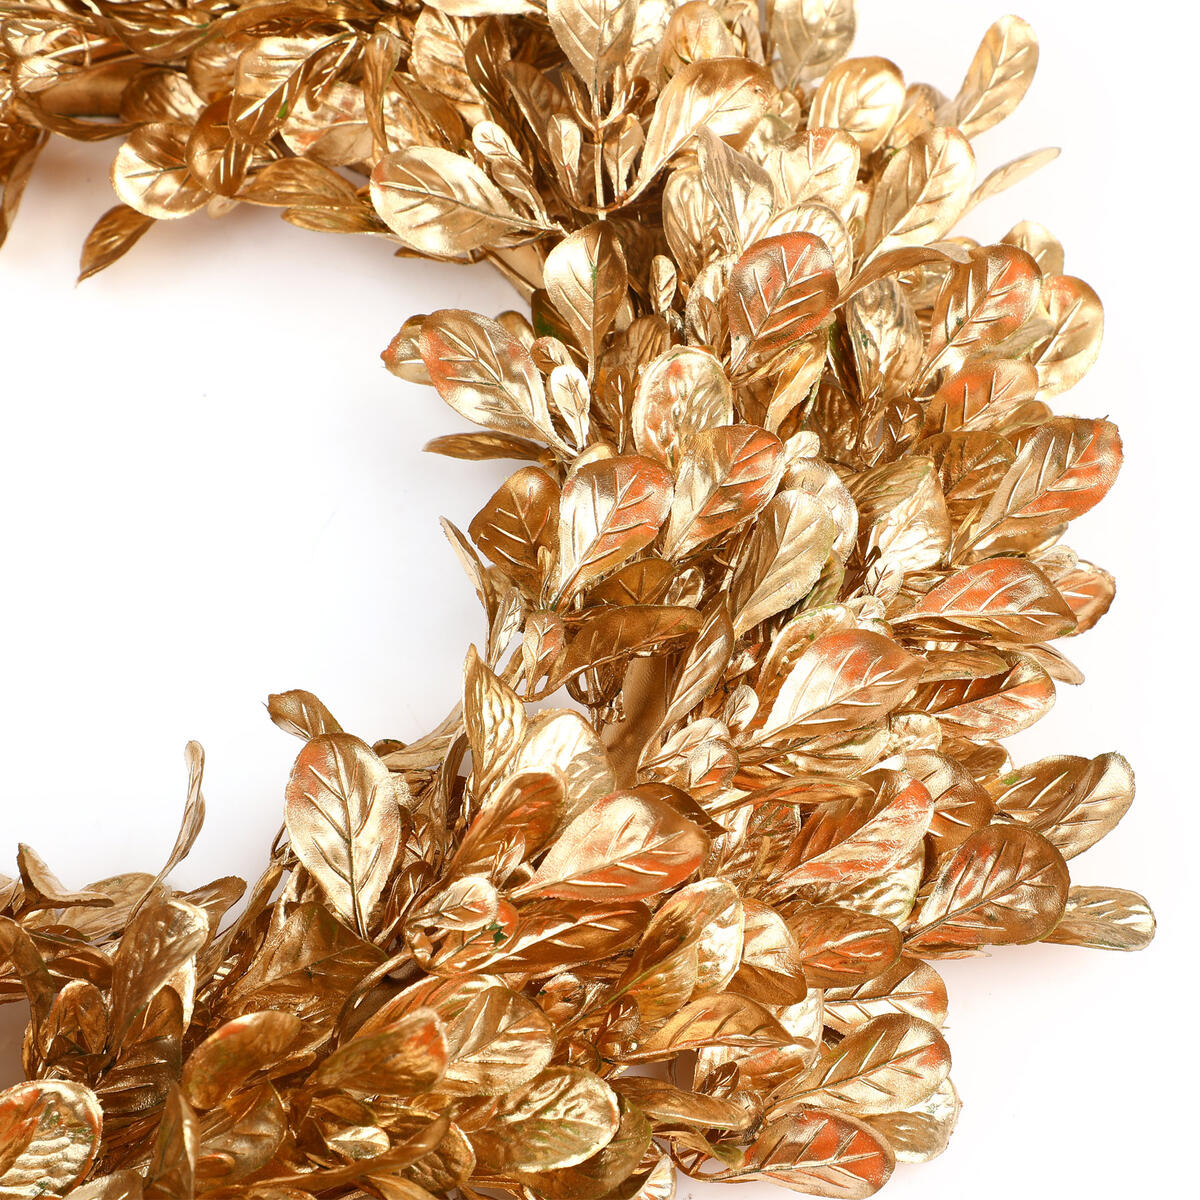 Gold Boxwood Wreath - 16 Inch Artificial Fall Wreaths for Front Door